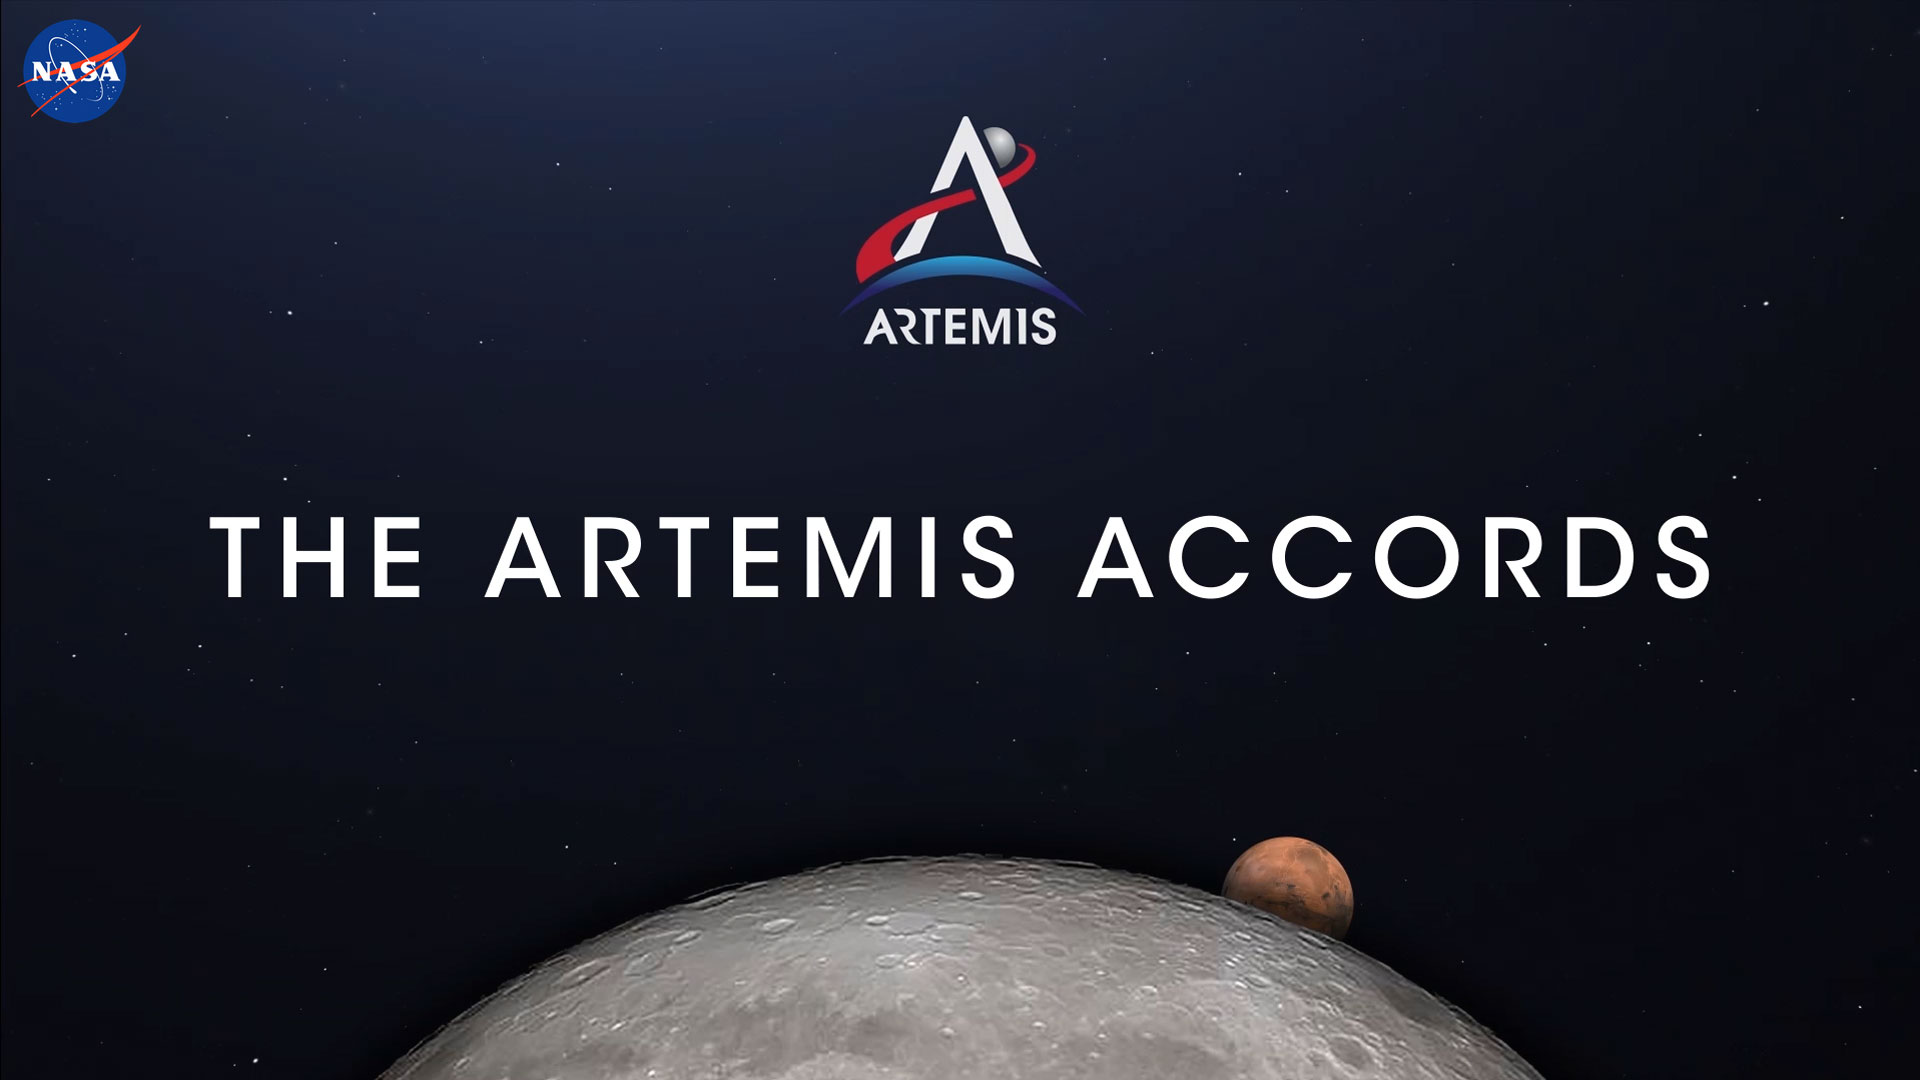 NASA's Artemis Accords lay out some rules for joint space exploration